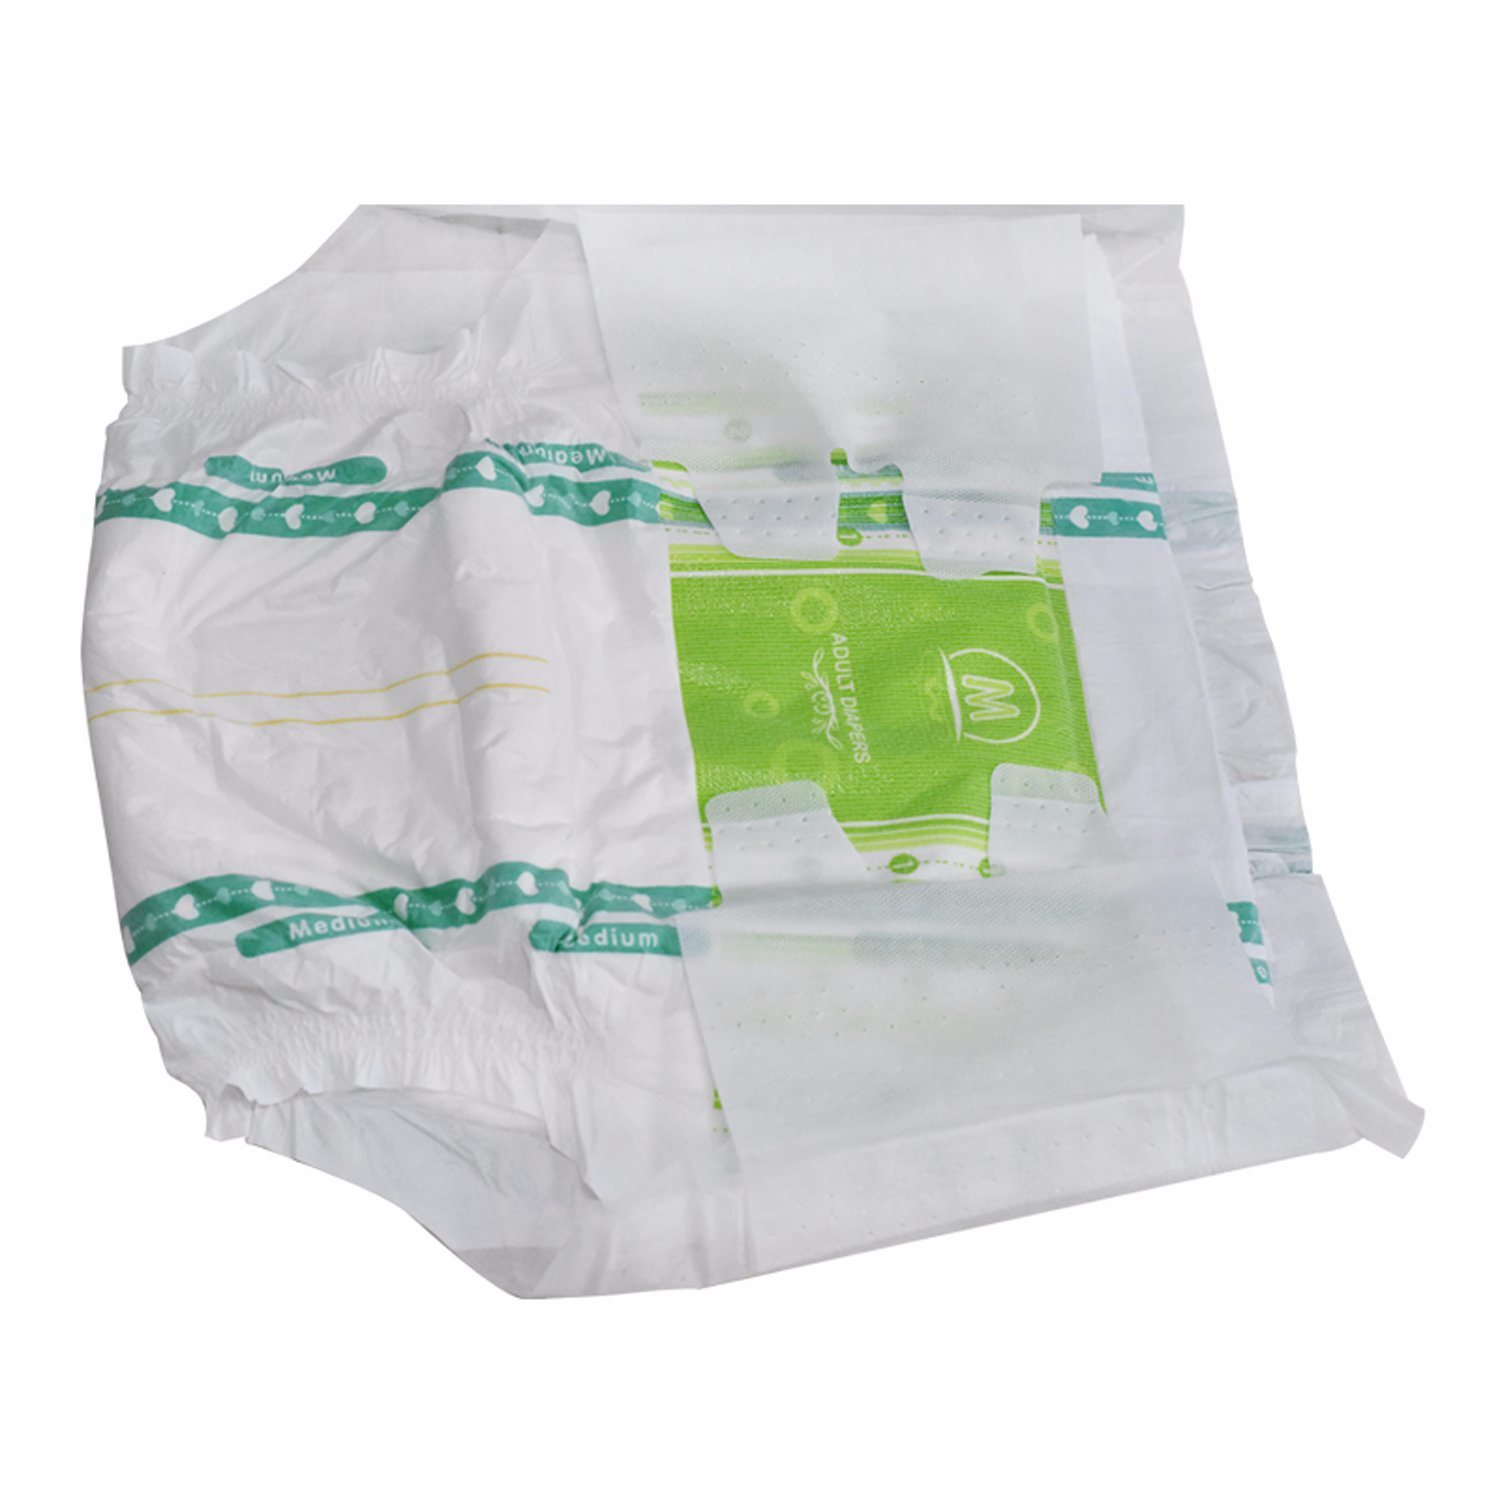 Magic Tape Disposable Cotton Adult Diapers for Inconvenience